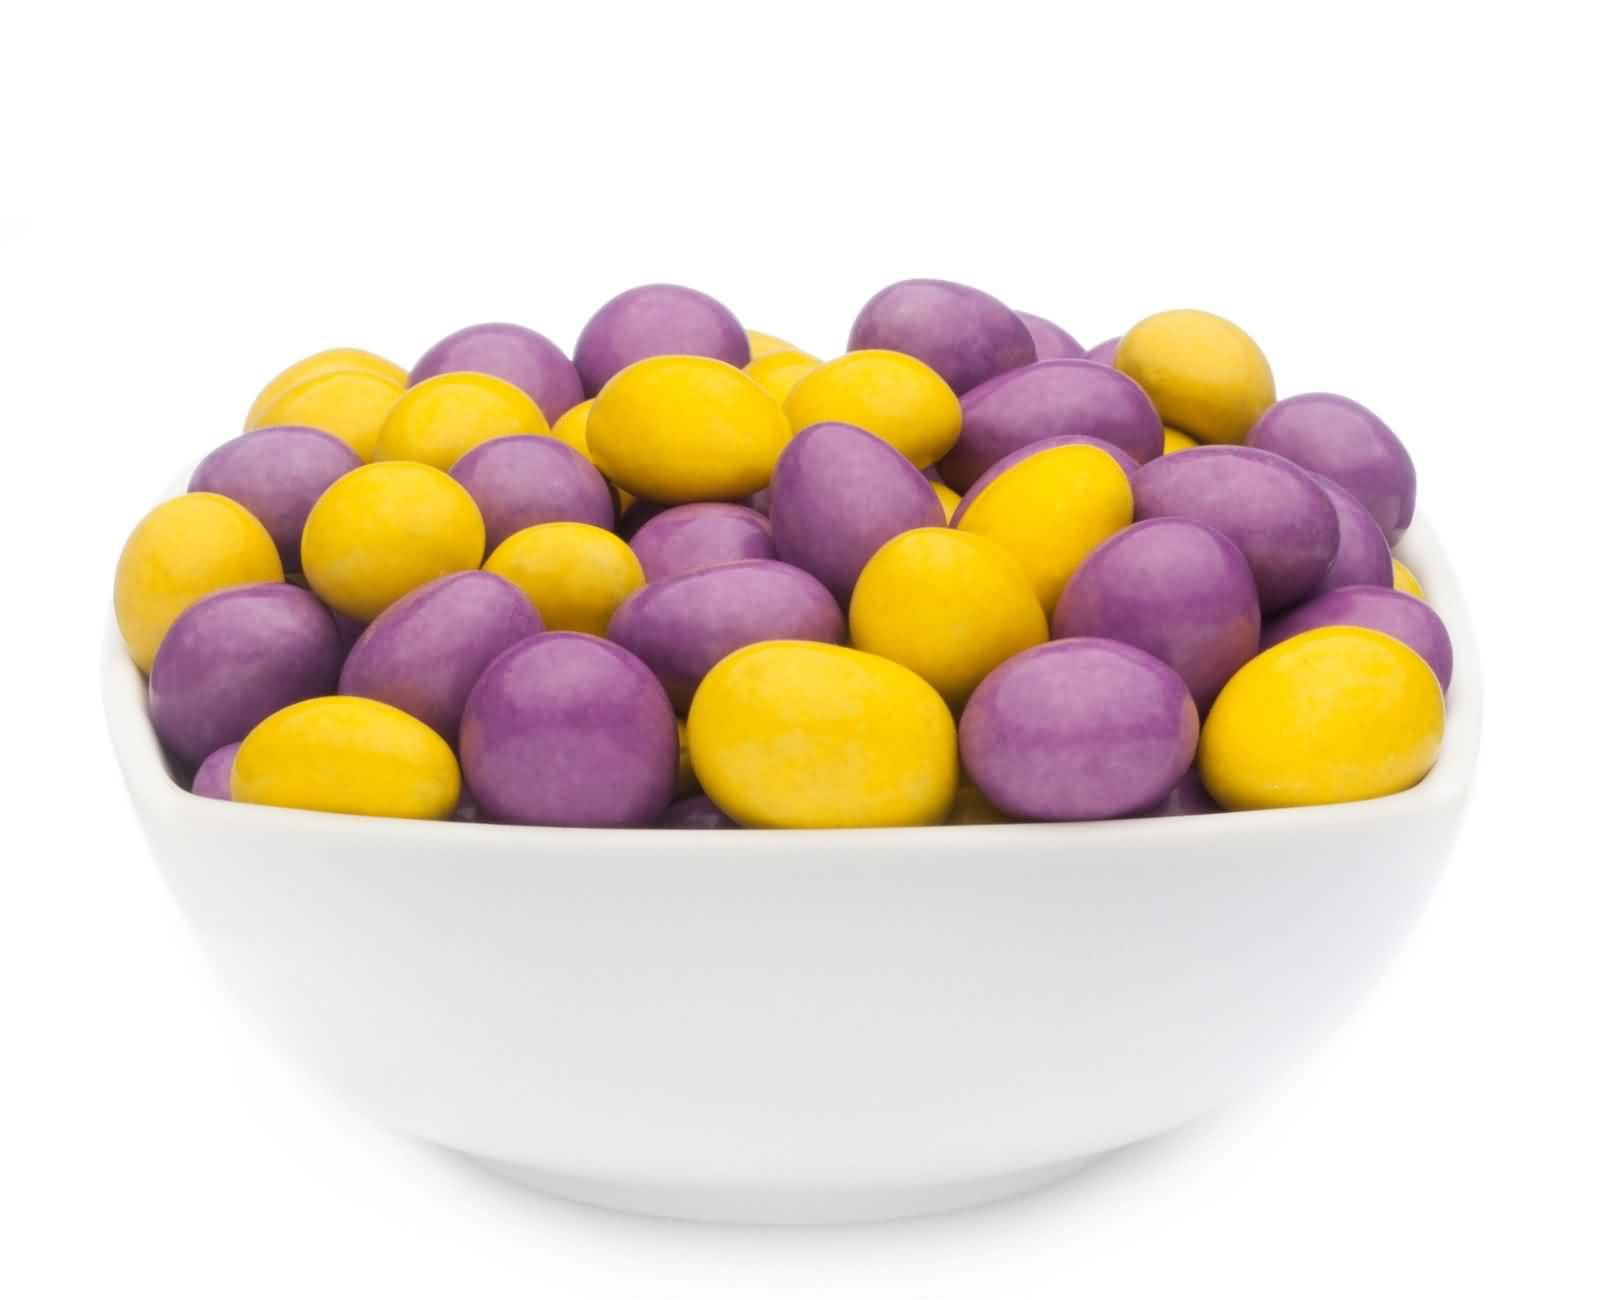 yellow purple peanuts zip beutel 750g crackerscompany minibar. Black Bedroom Furniture Sets. Home Design Ideas